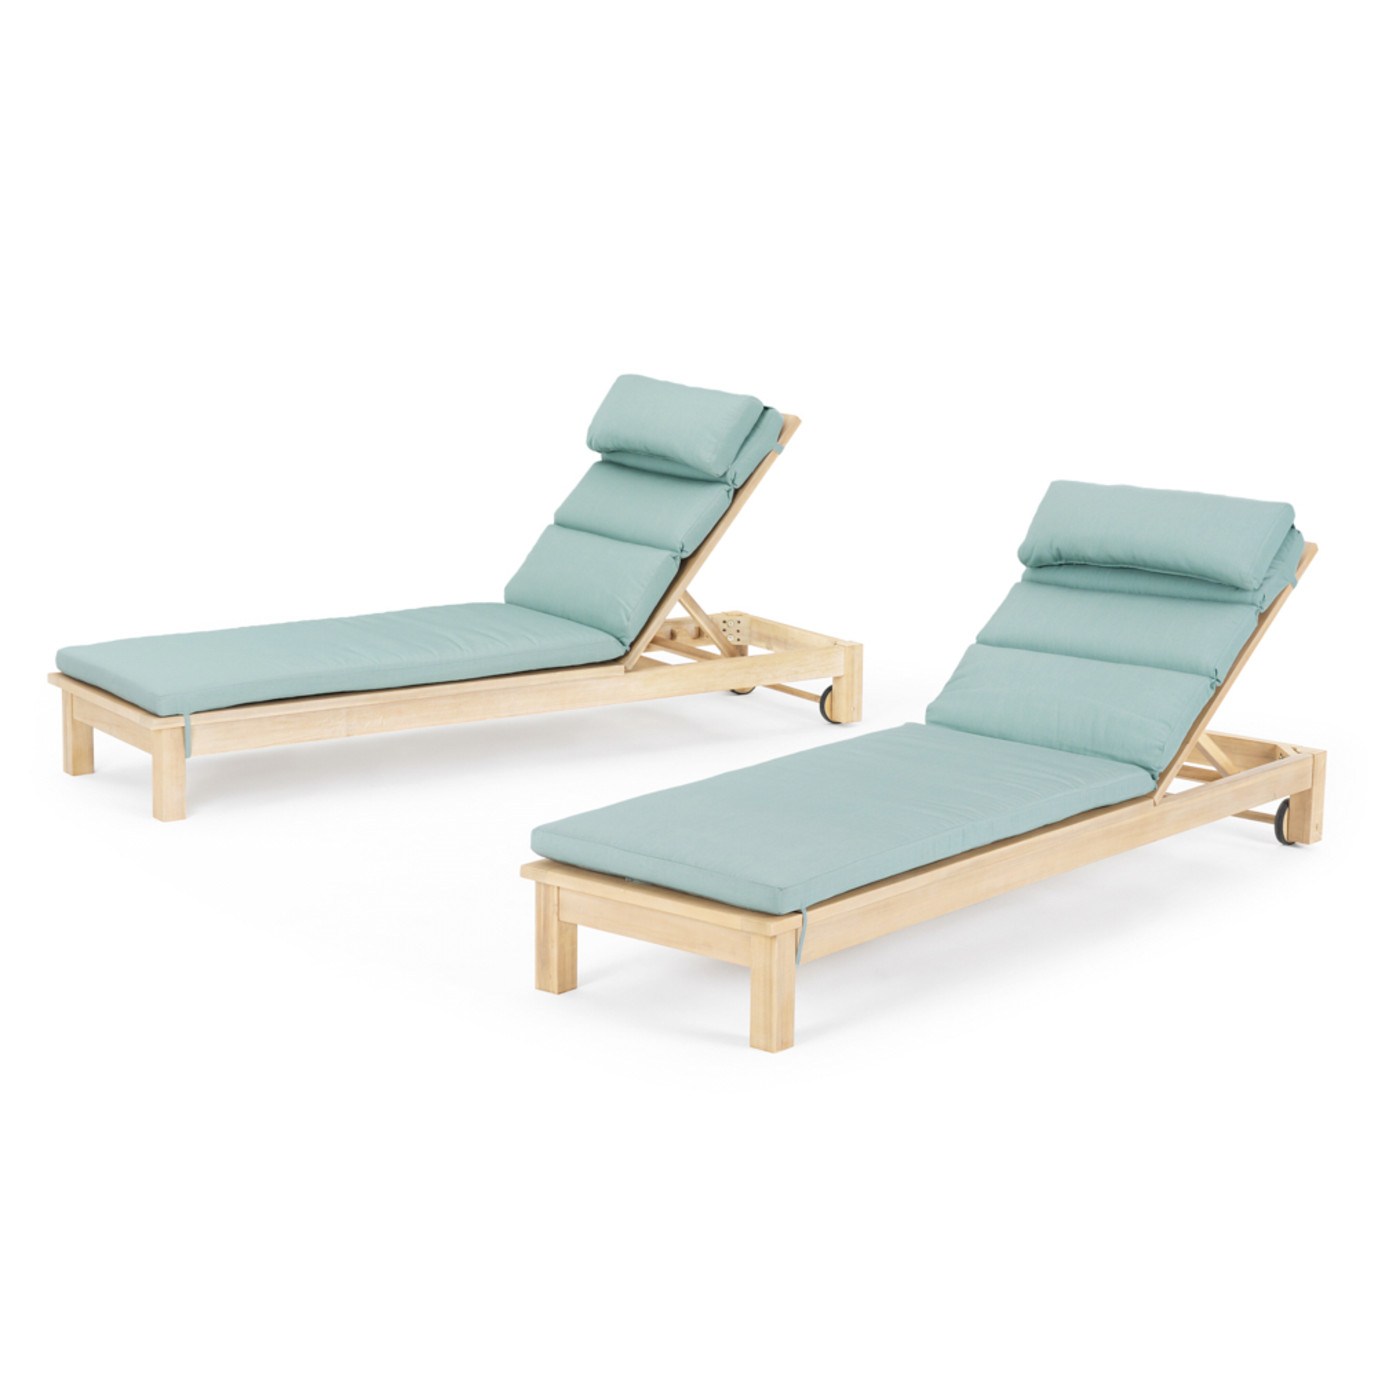 Kooper Chaise Lounges - Bliss Blue